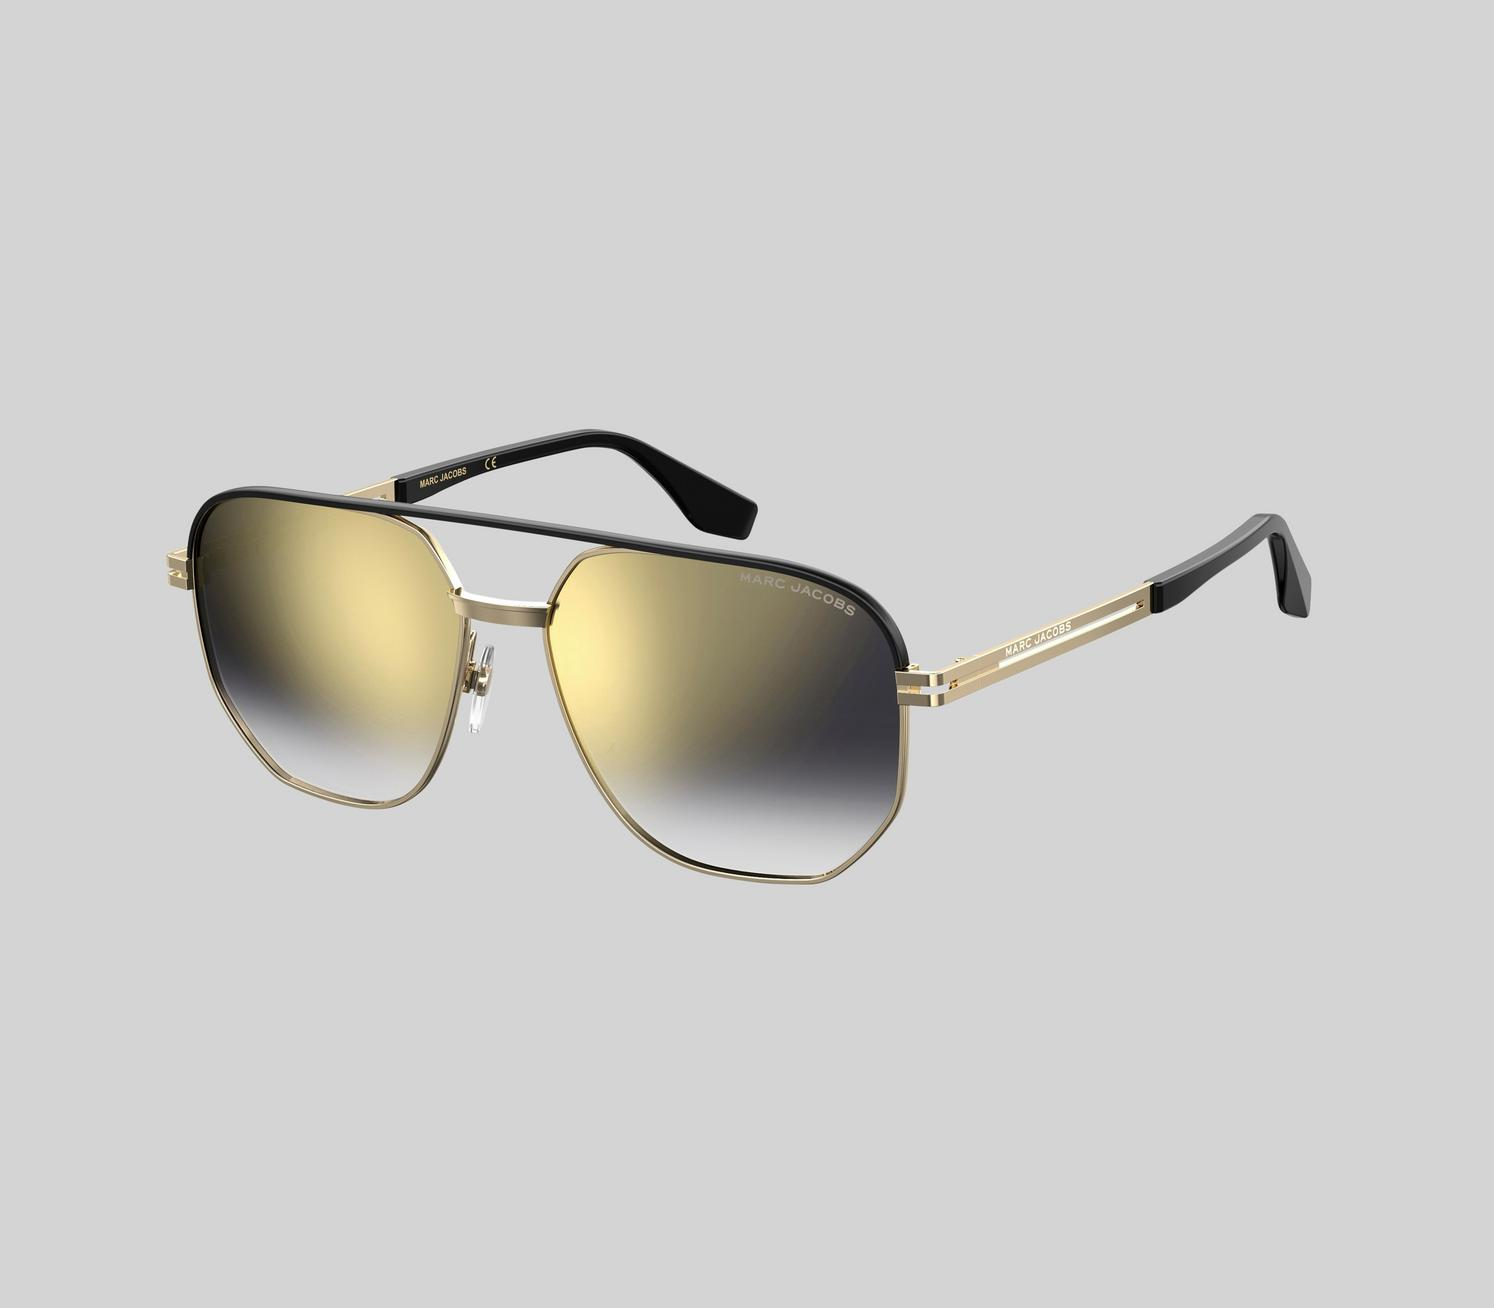 Marc Jacobs - the compact aviators